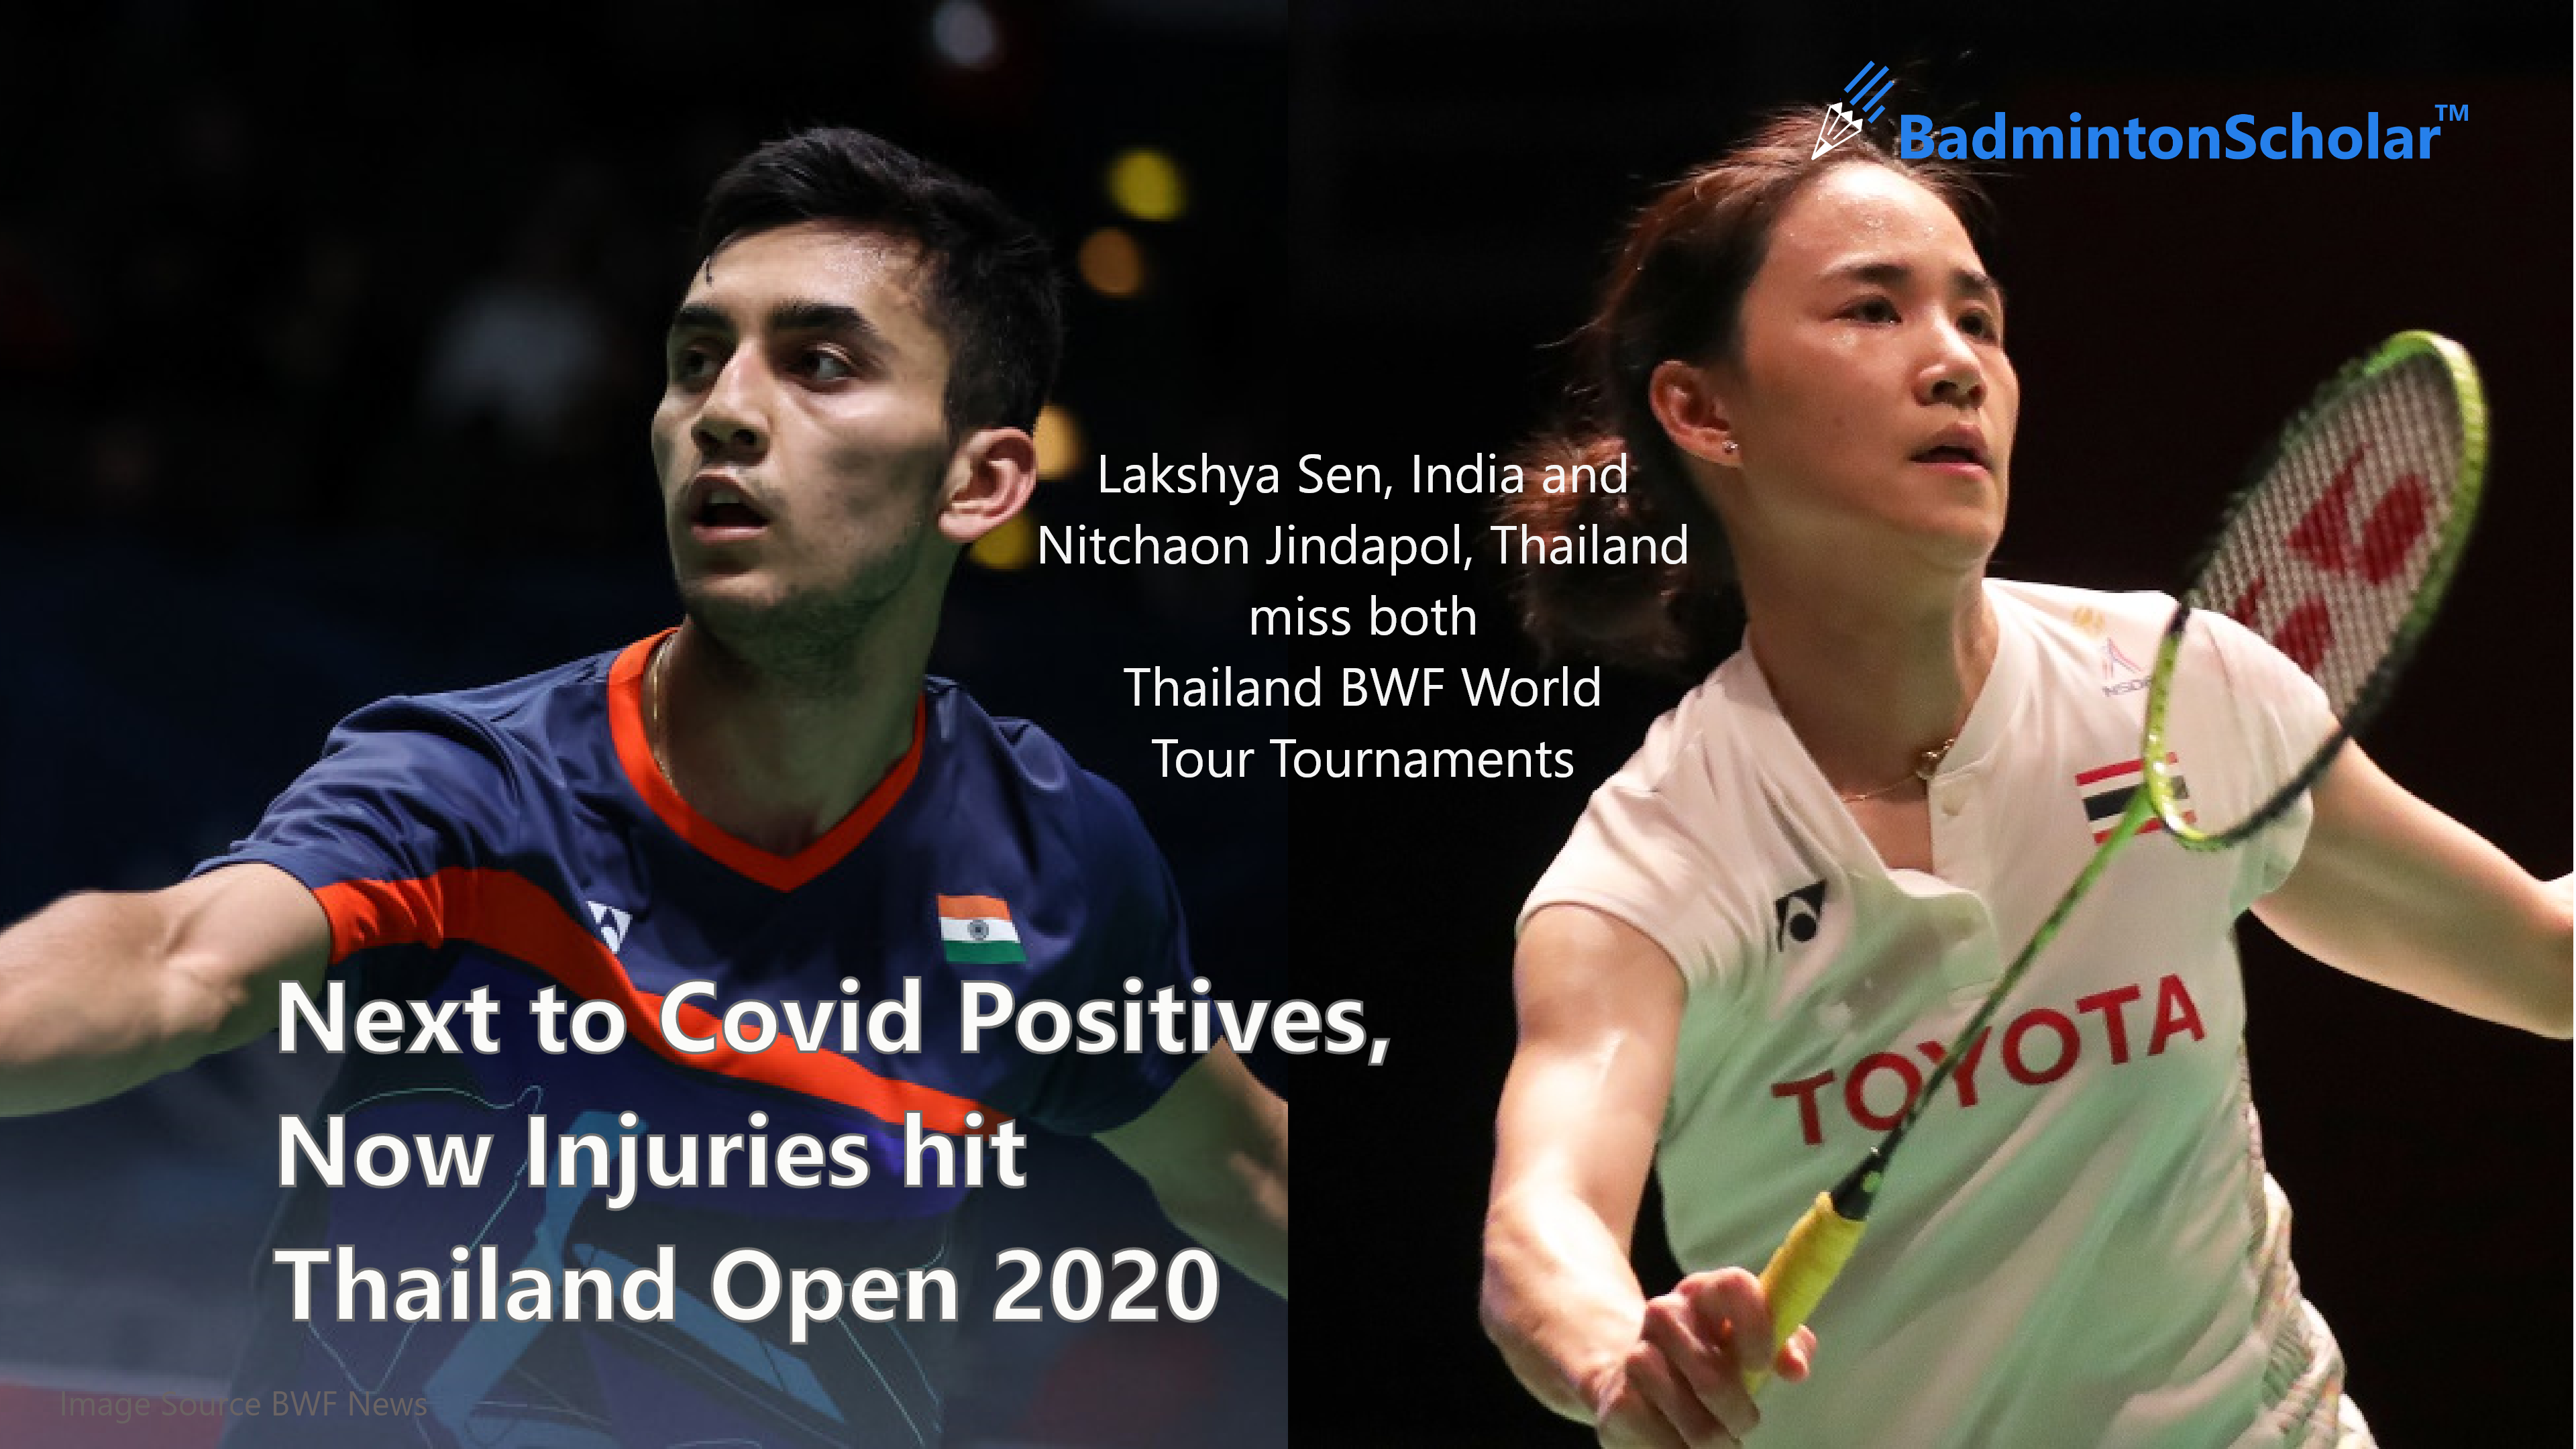 Next to Covid Positives, Now Injuries hit Thailand Open 2020. Lakshya Sen, India and  Nitchaon Jindapol, Thailand miss both Thailand BWF World Tour Tournaments